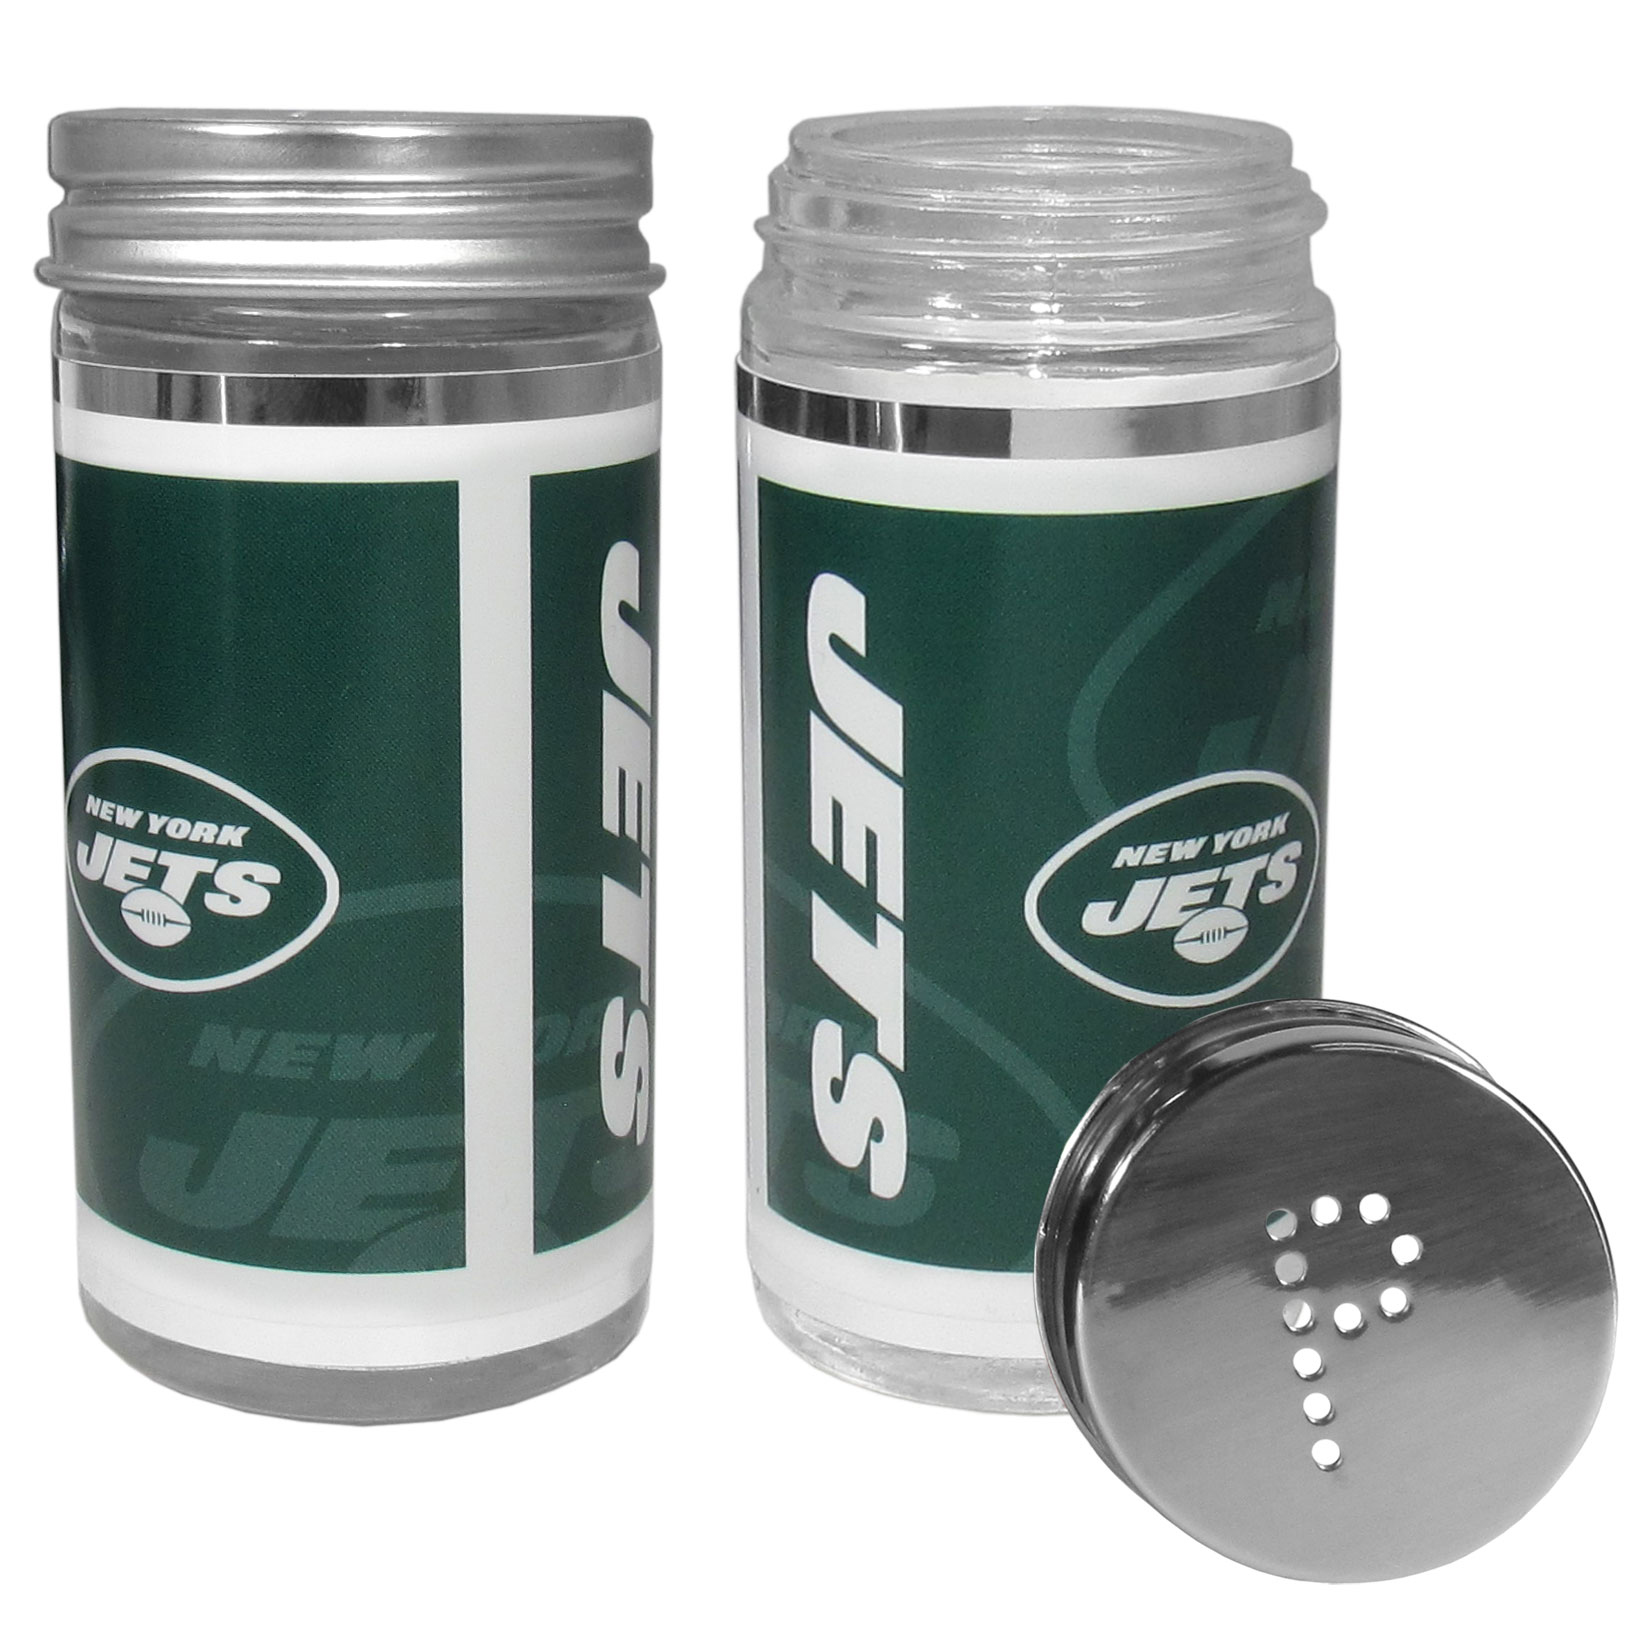 New York Jets Tailgater Salt & Pepper Shakers - No tailgate party is complete without your New York Jets salt & pepper shakers featuring bright team graphics. The glass shakers are 3.75 inches tall and the screw top lids have holes that spell out P and S. These team shakers are a great grill accessory whether you are barbecuing on the patio, picnicing or having a game day party.